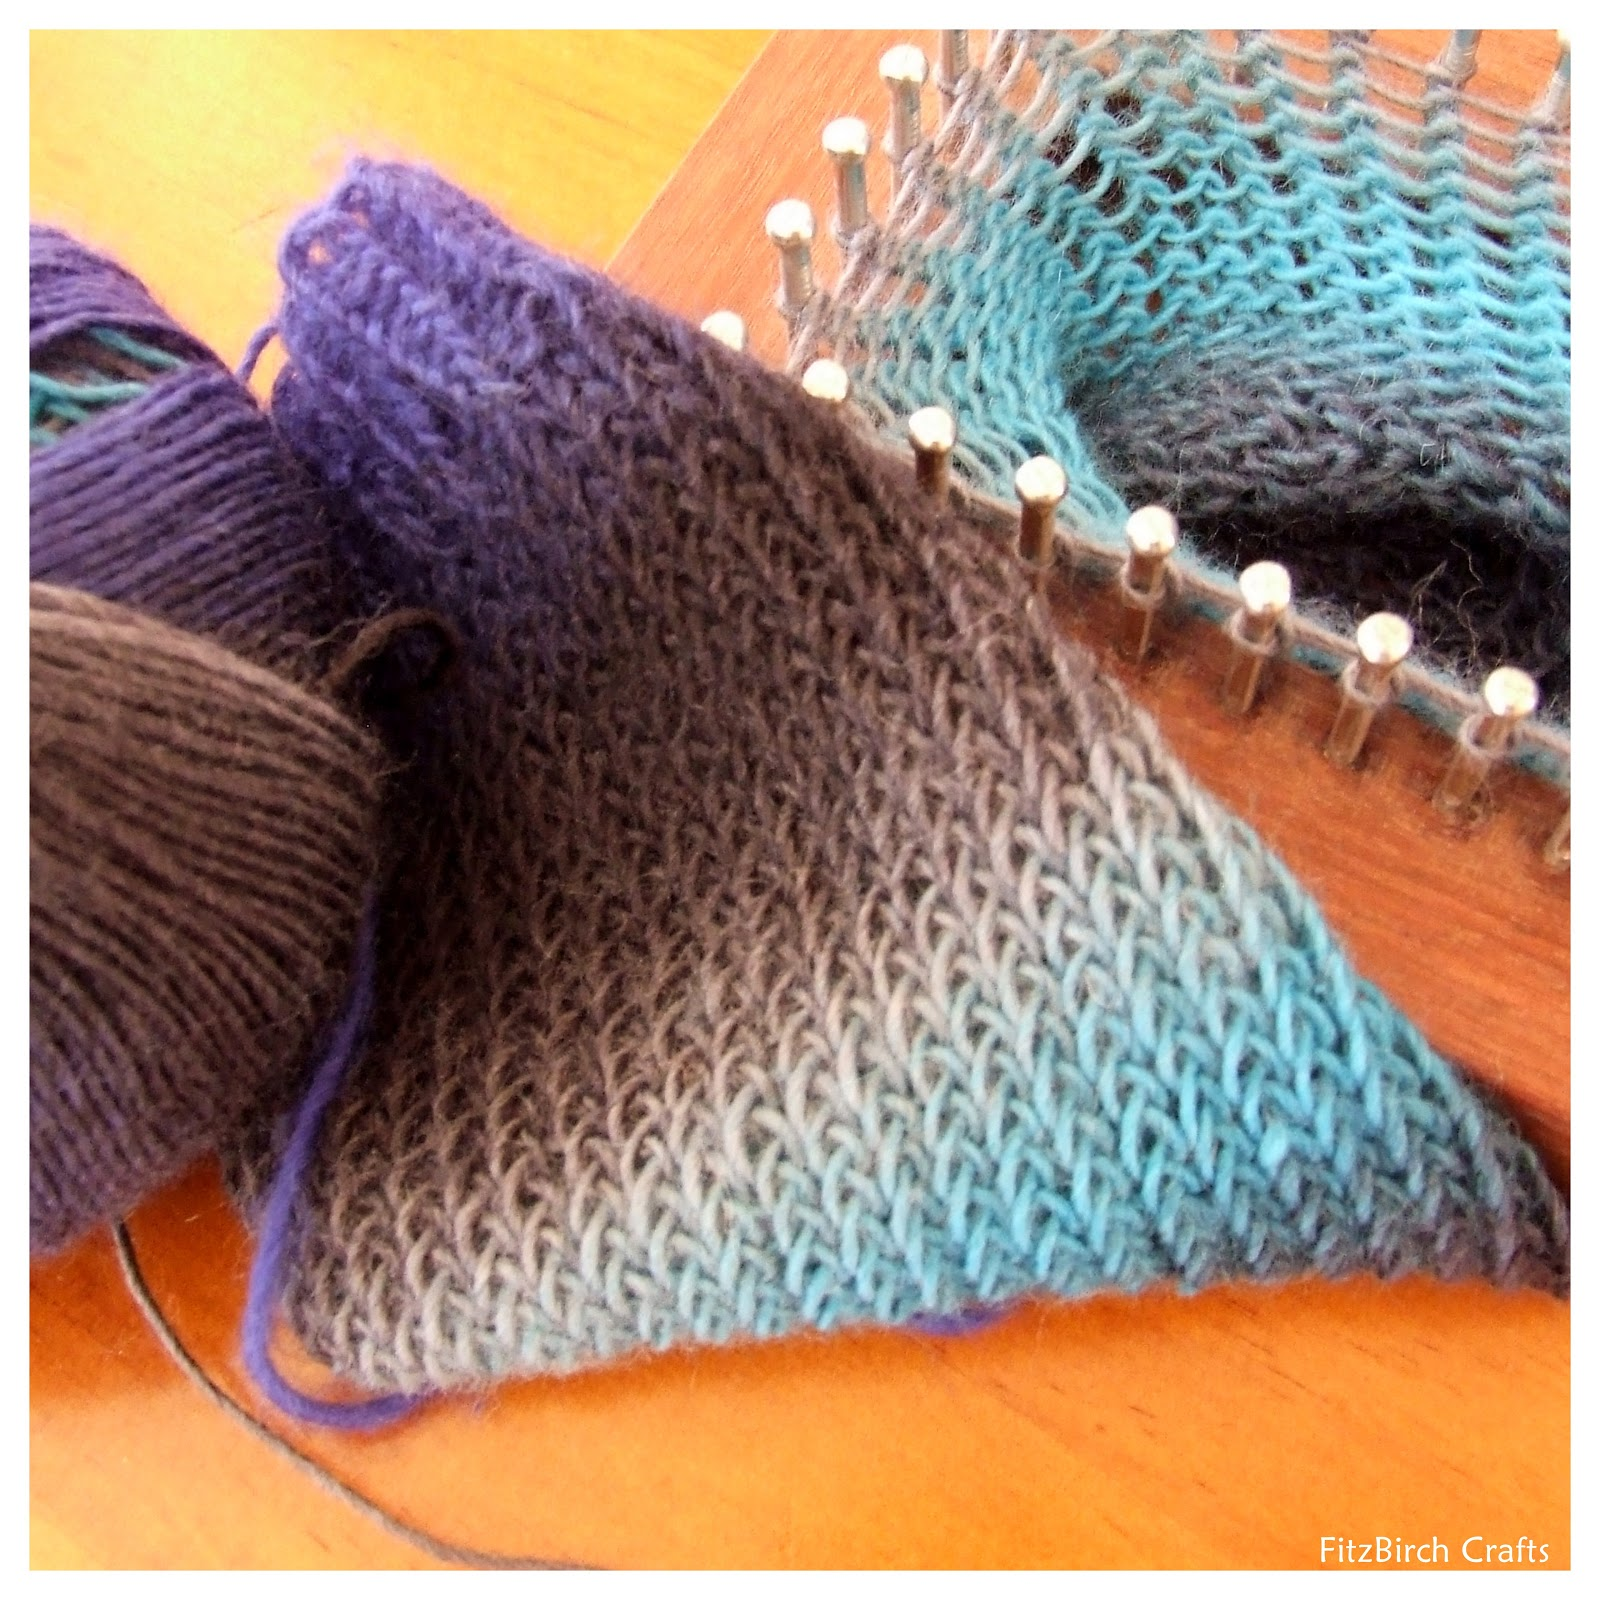 Knitting Loom Ideas : Fitzbirch crafts loom knit socks